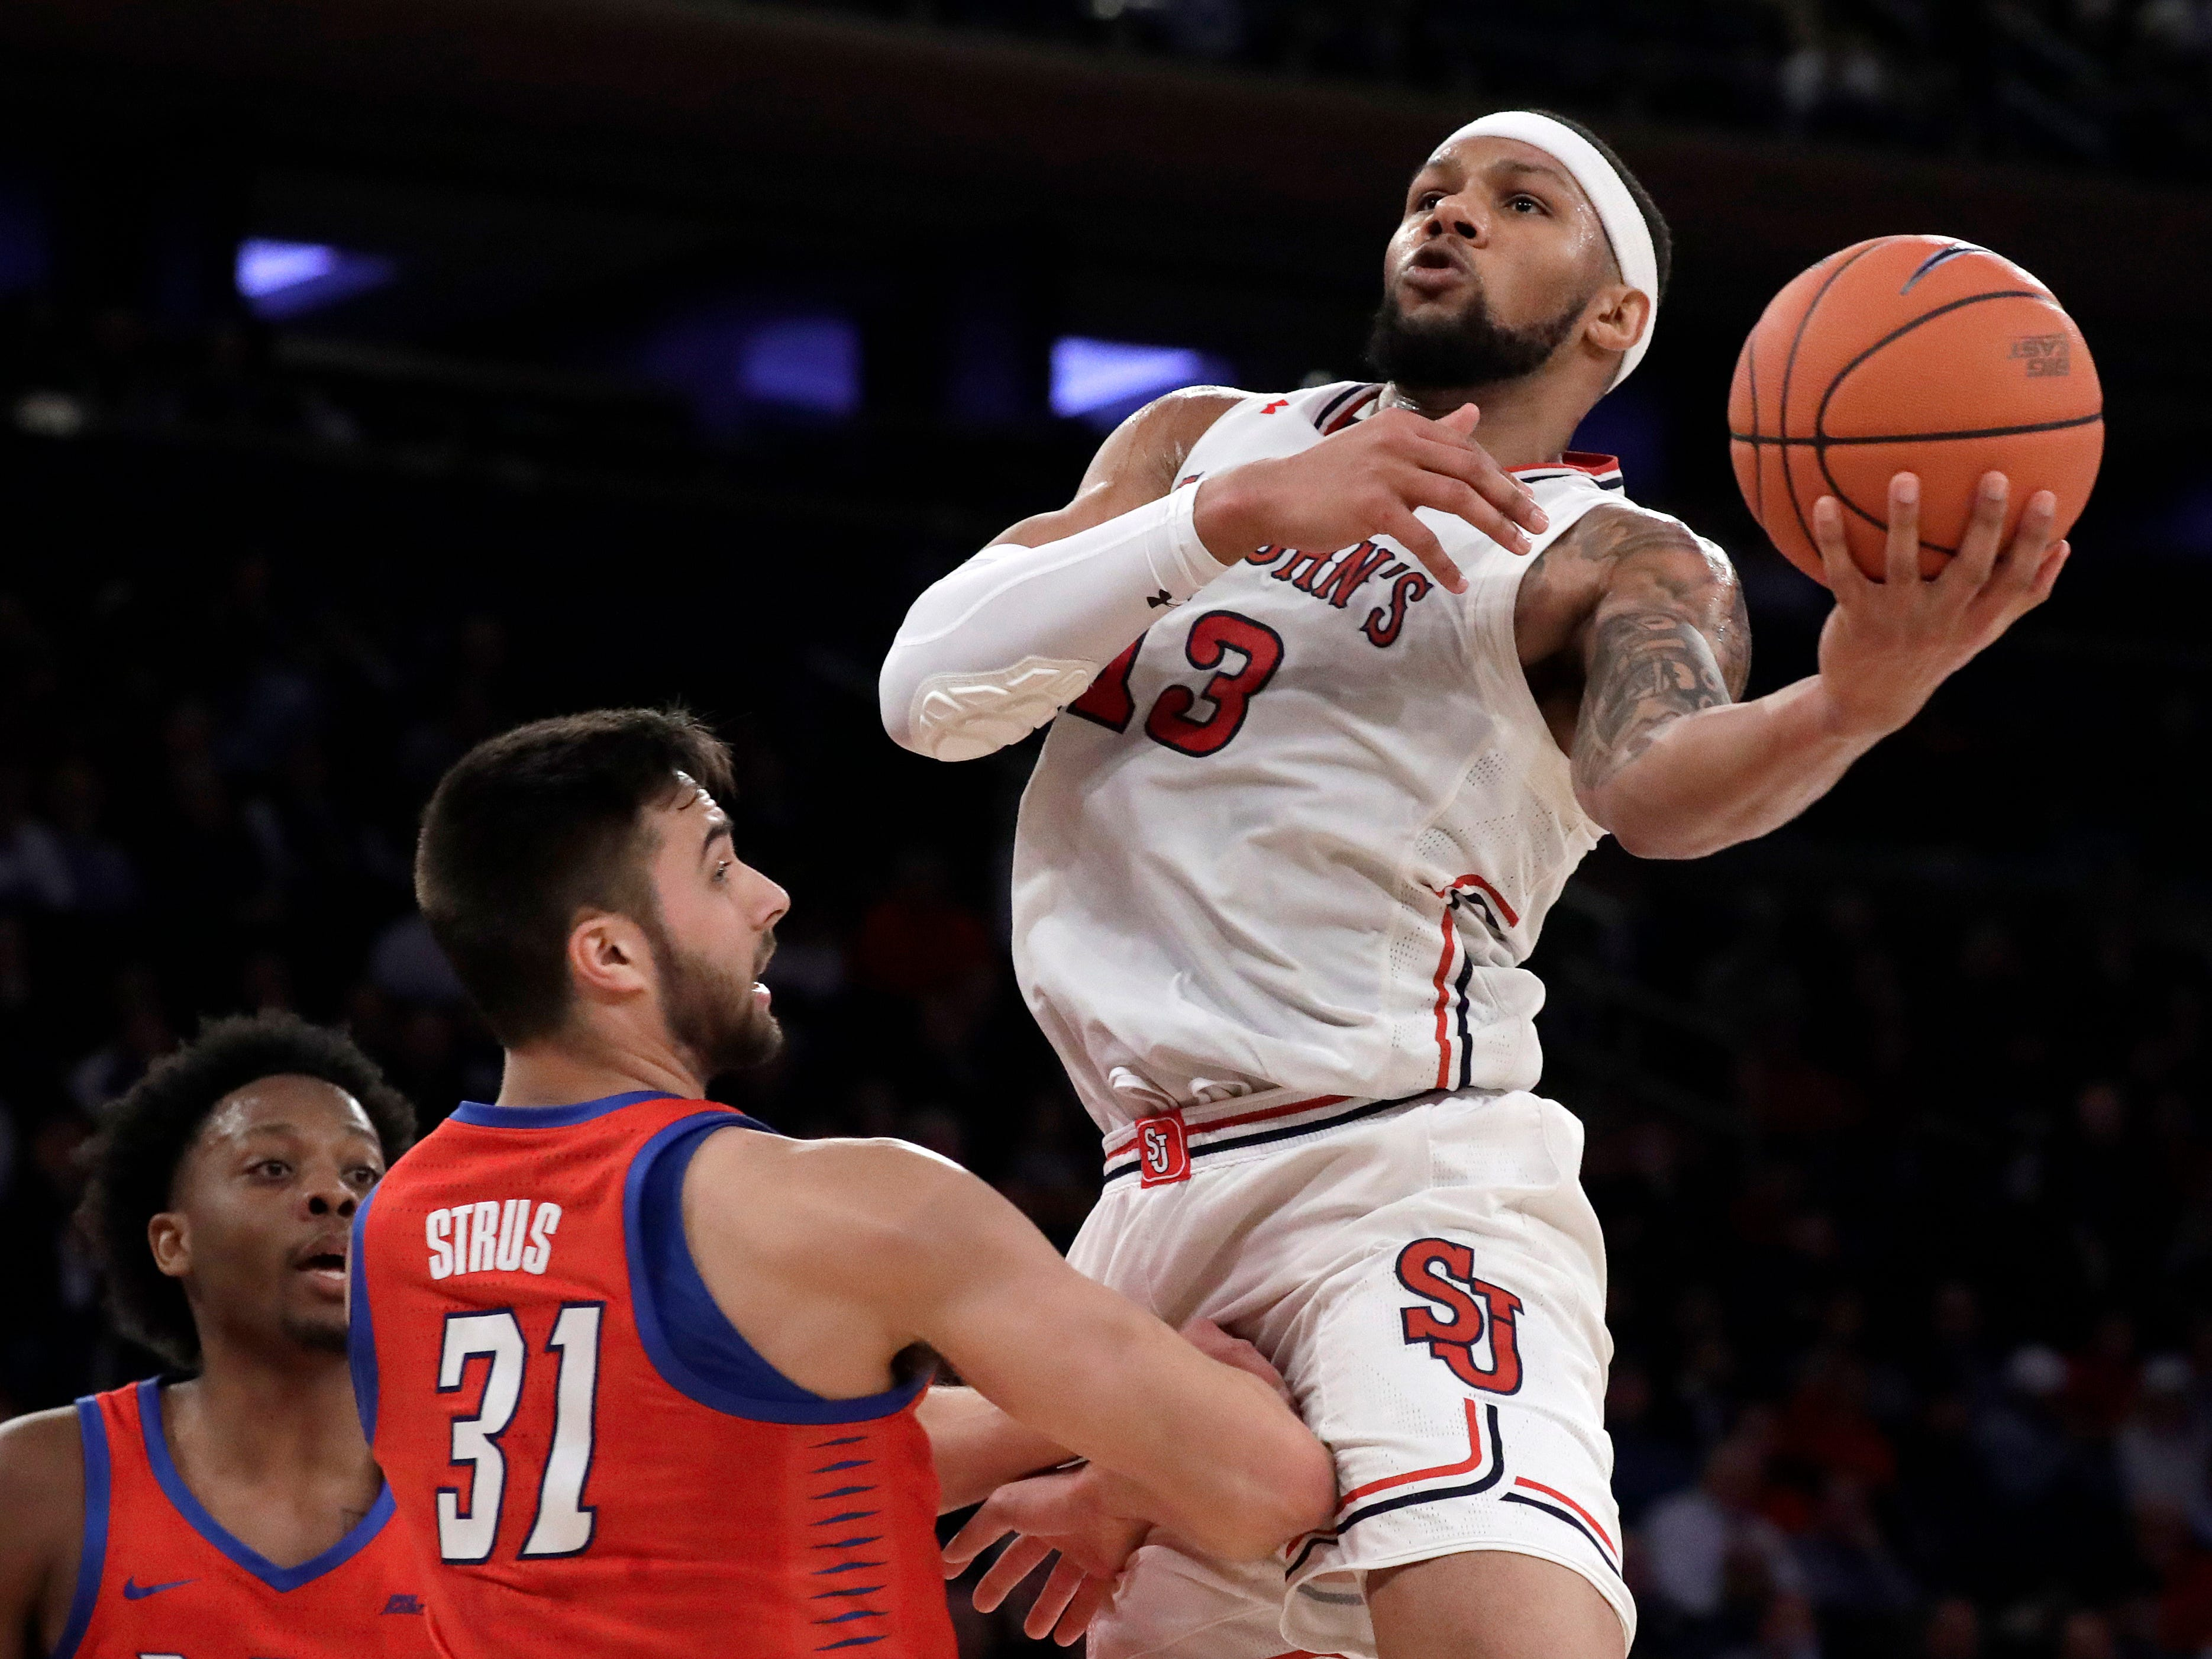 Marvin Clark II, 6-7 forward, senior, St. John's (Michigan State): Another player who helped the Spartans reach the Final Four in 2015, Clark averages 10.8 points and 5.4 rebounds per game for the Red Storm. He's started 32 of 33 games, and 65 of 66 over two seasons at St. John's.